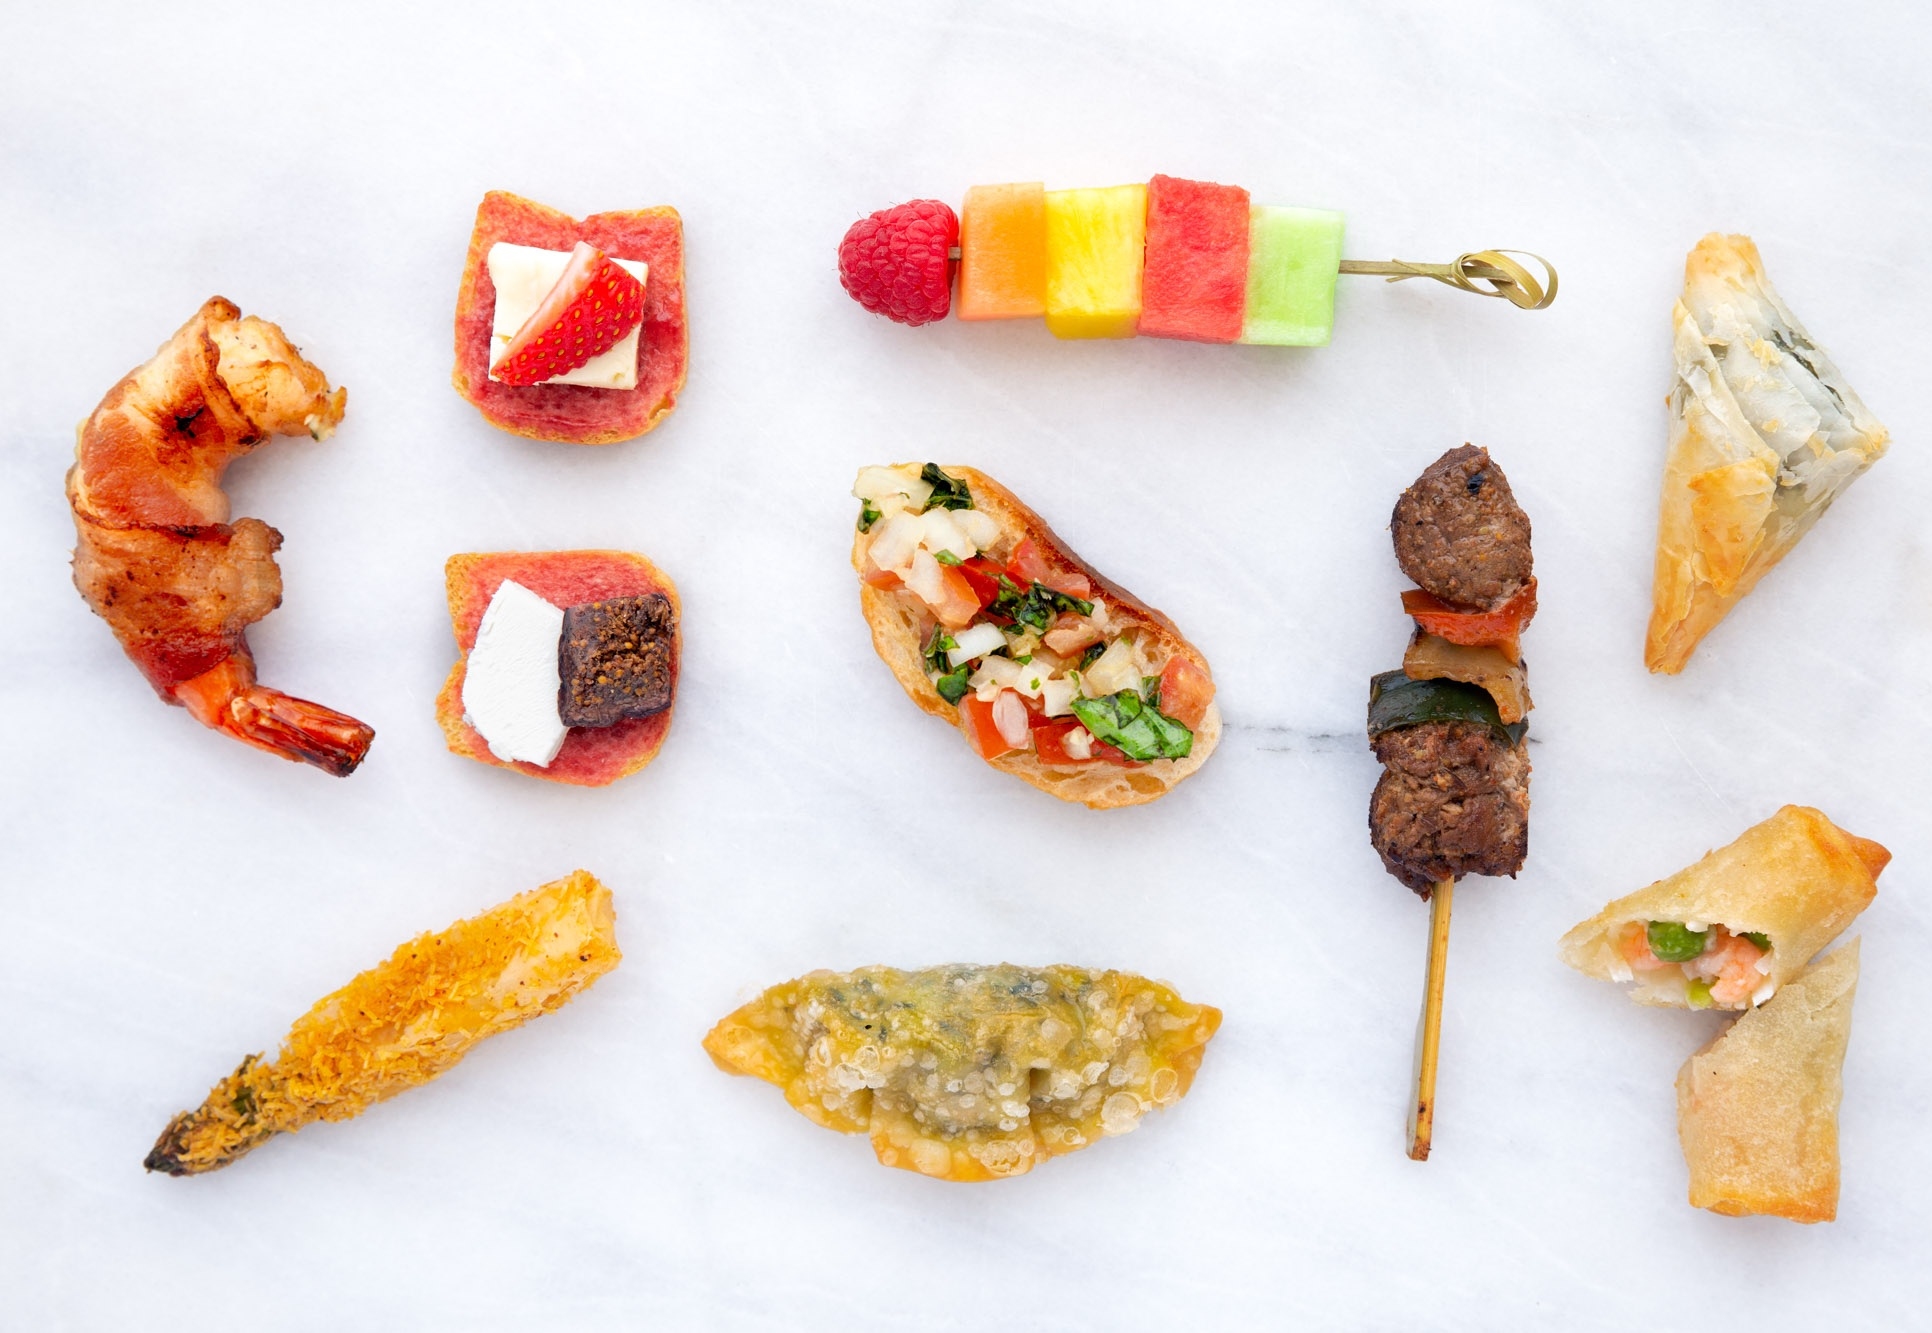 Top Row, L-R: Bacon Wrapped Shrimp, Brie & Strawberries on Toast, Seasonal fruit Skewer, Spanakopita; middle Row, L-R: Fig & Goat Cheese on Toast, Bruschetta, Chipotle Churrasco Steak Skewer; Bottom Row, L-R: Asparagus Asiago Roll, Kale Pot Sticker, Thai Shrimp & coconut Spring Roll; PC,  Taming of the Spoon